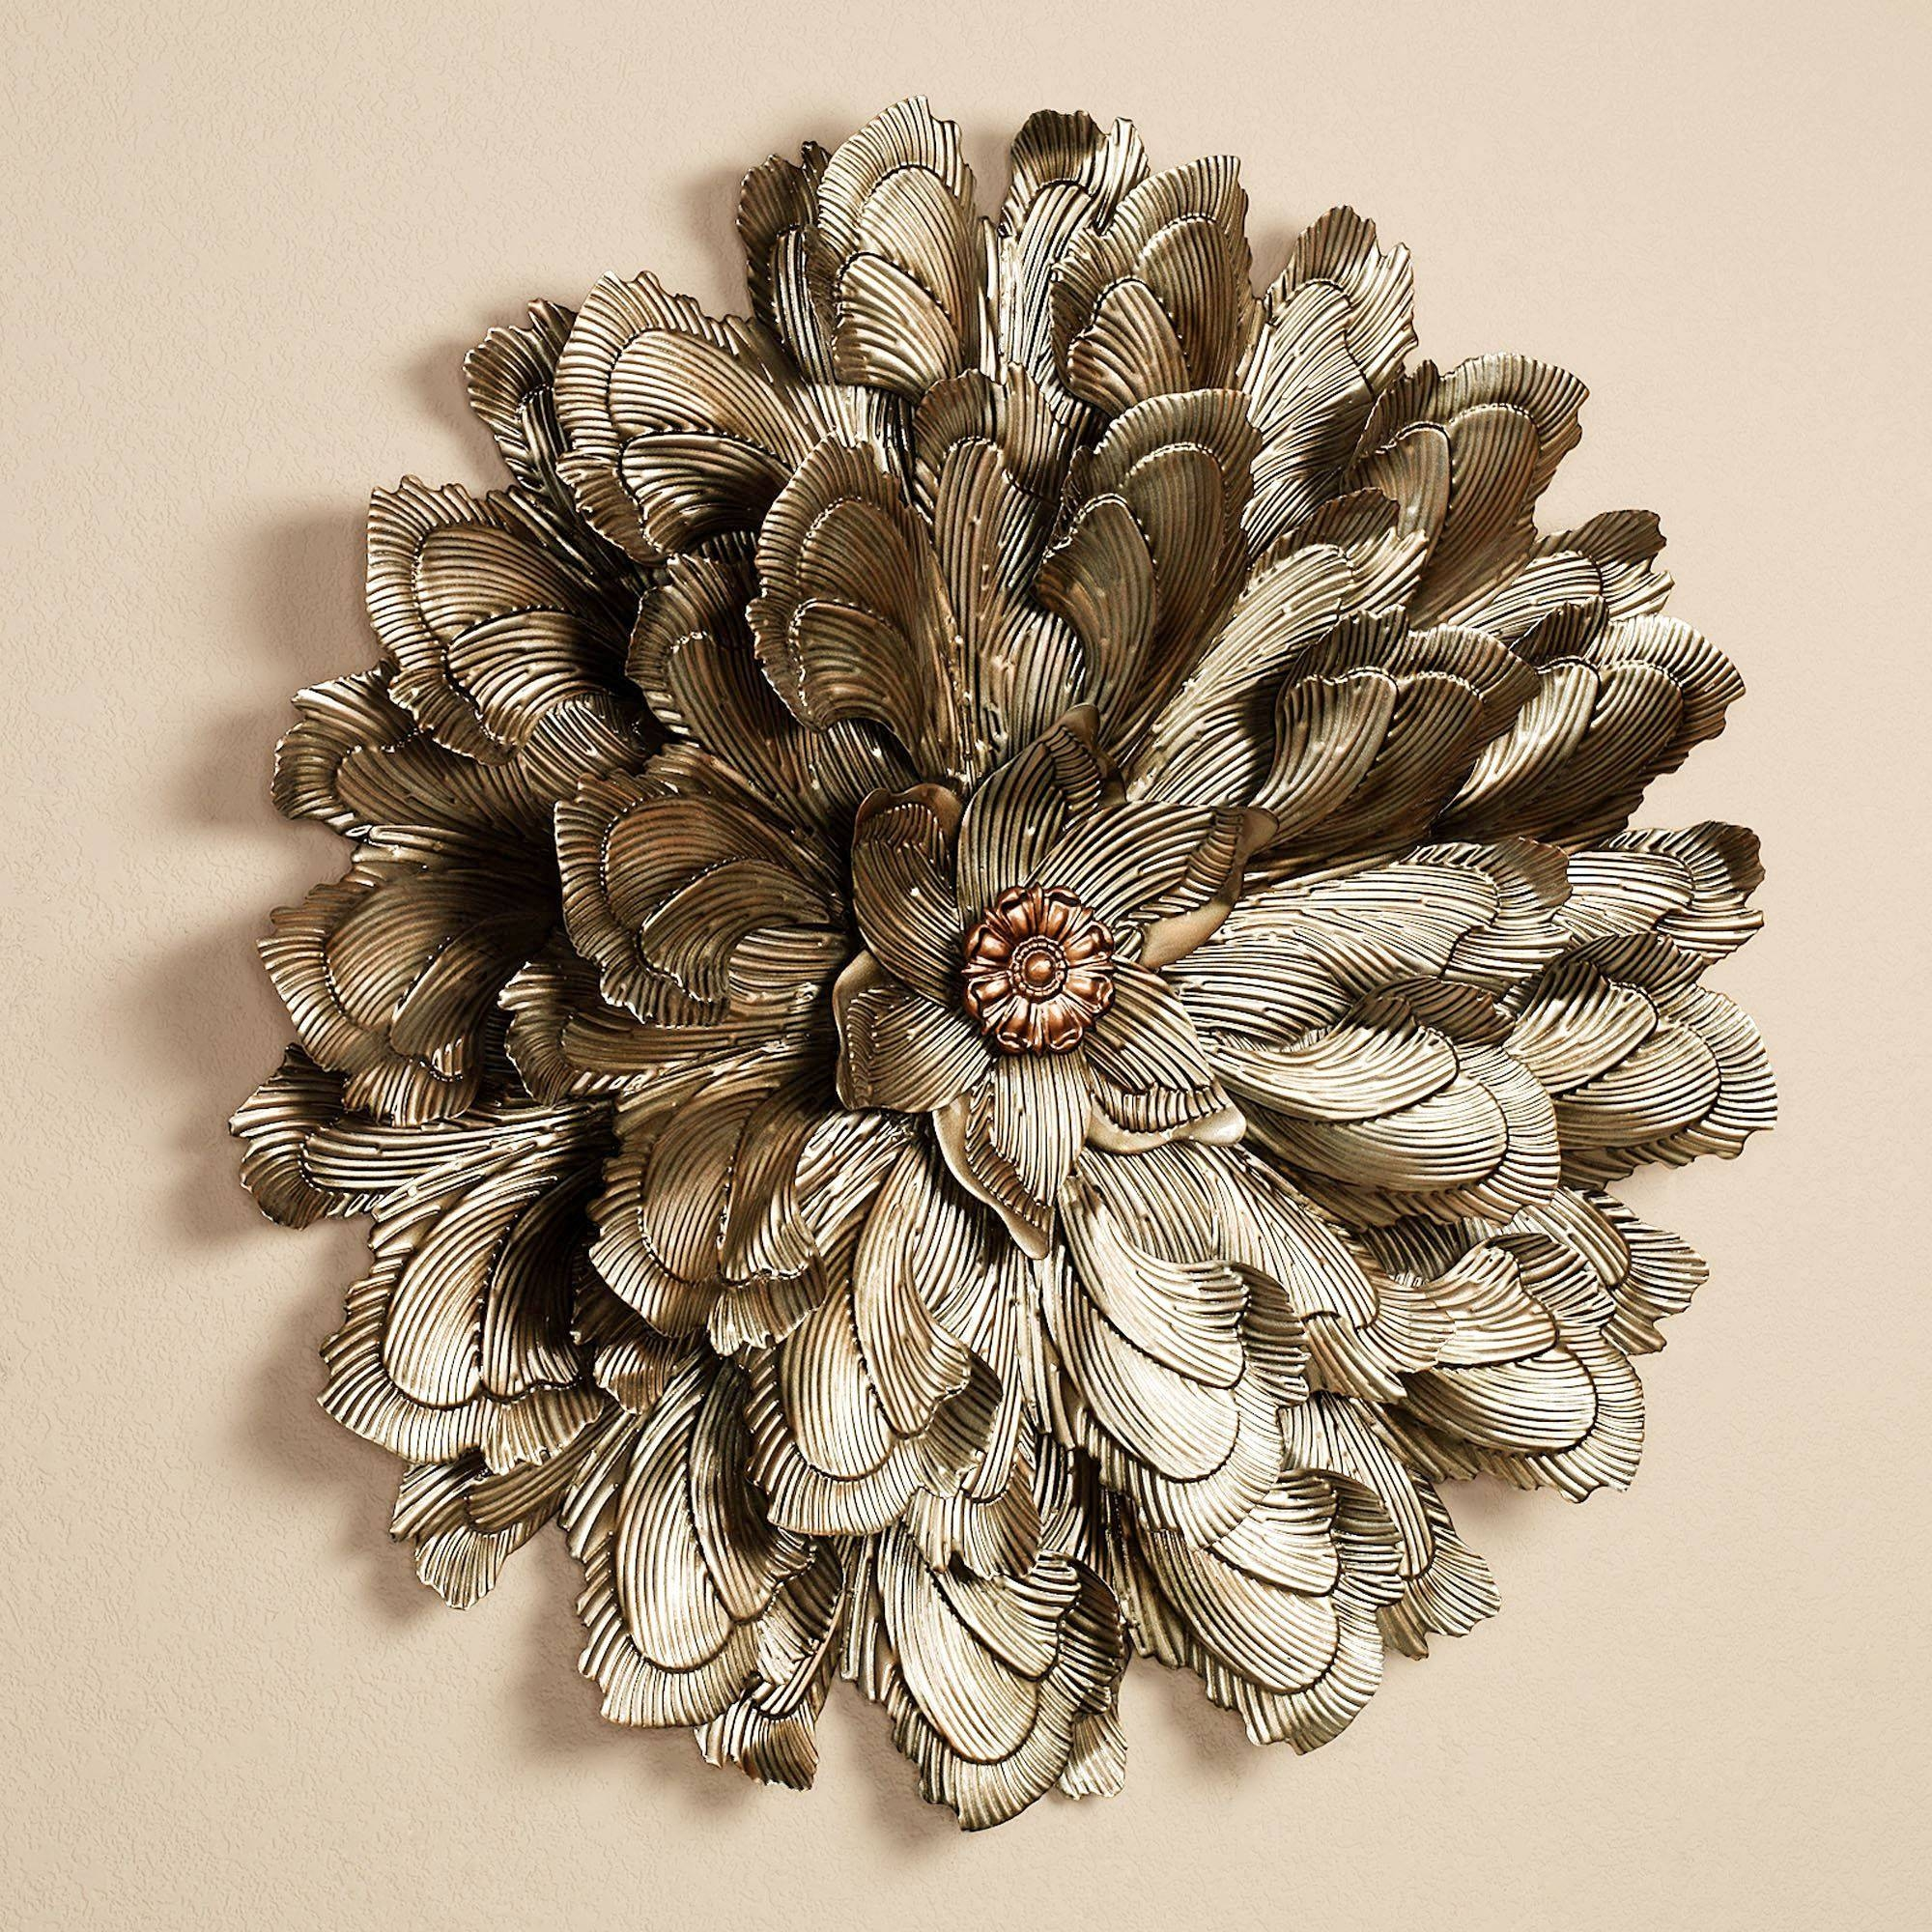 41 Silver Metal Wall Art Flowers, Home Metal Wall Art Wall Decor Throughout Current Large Metal Wall Art Decor (View 1 of 20)